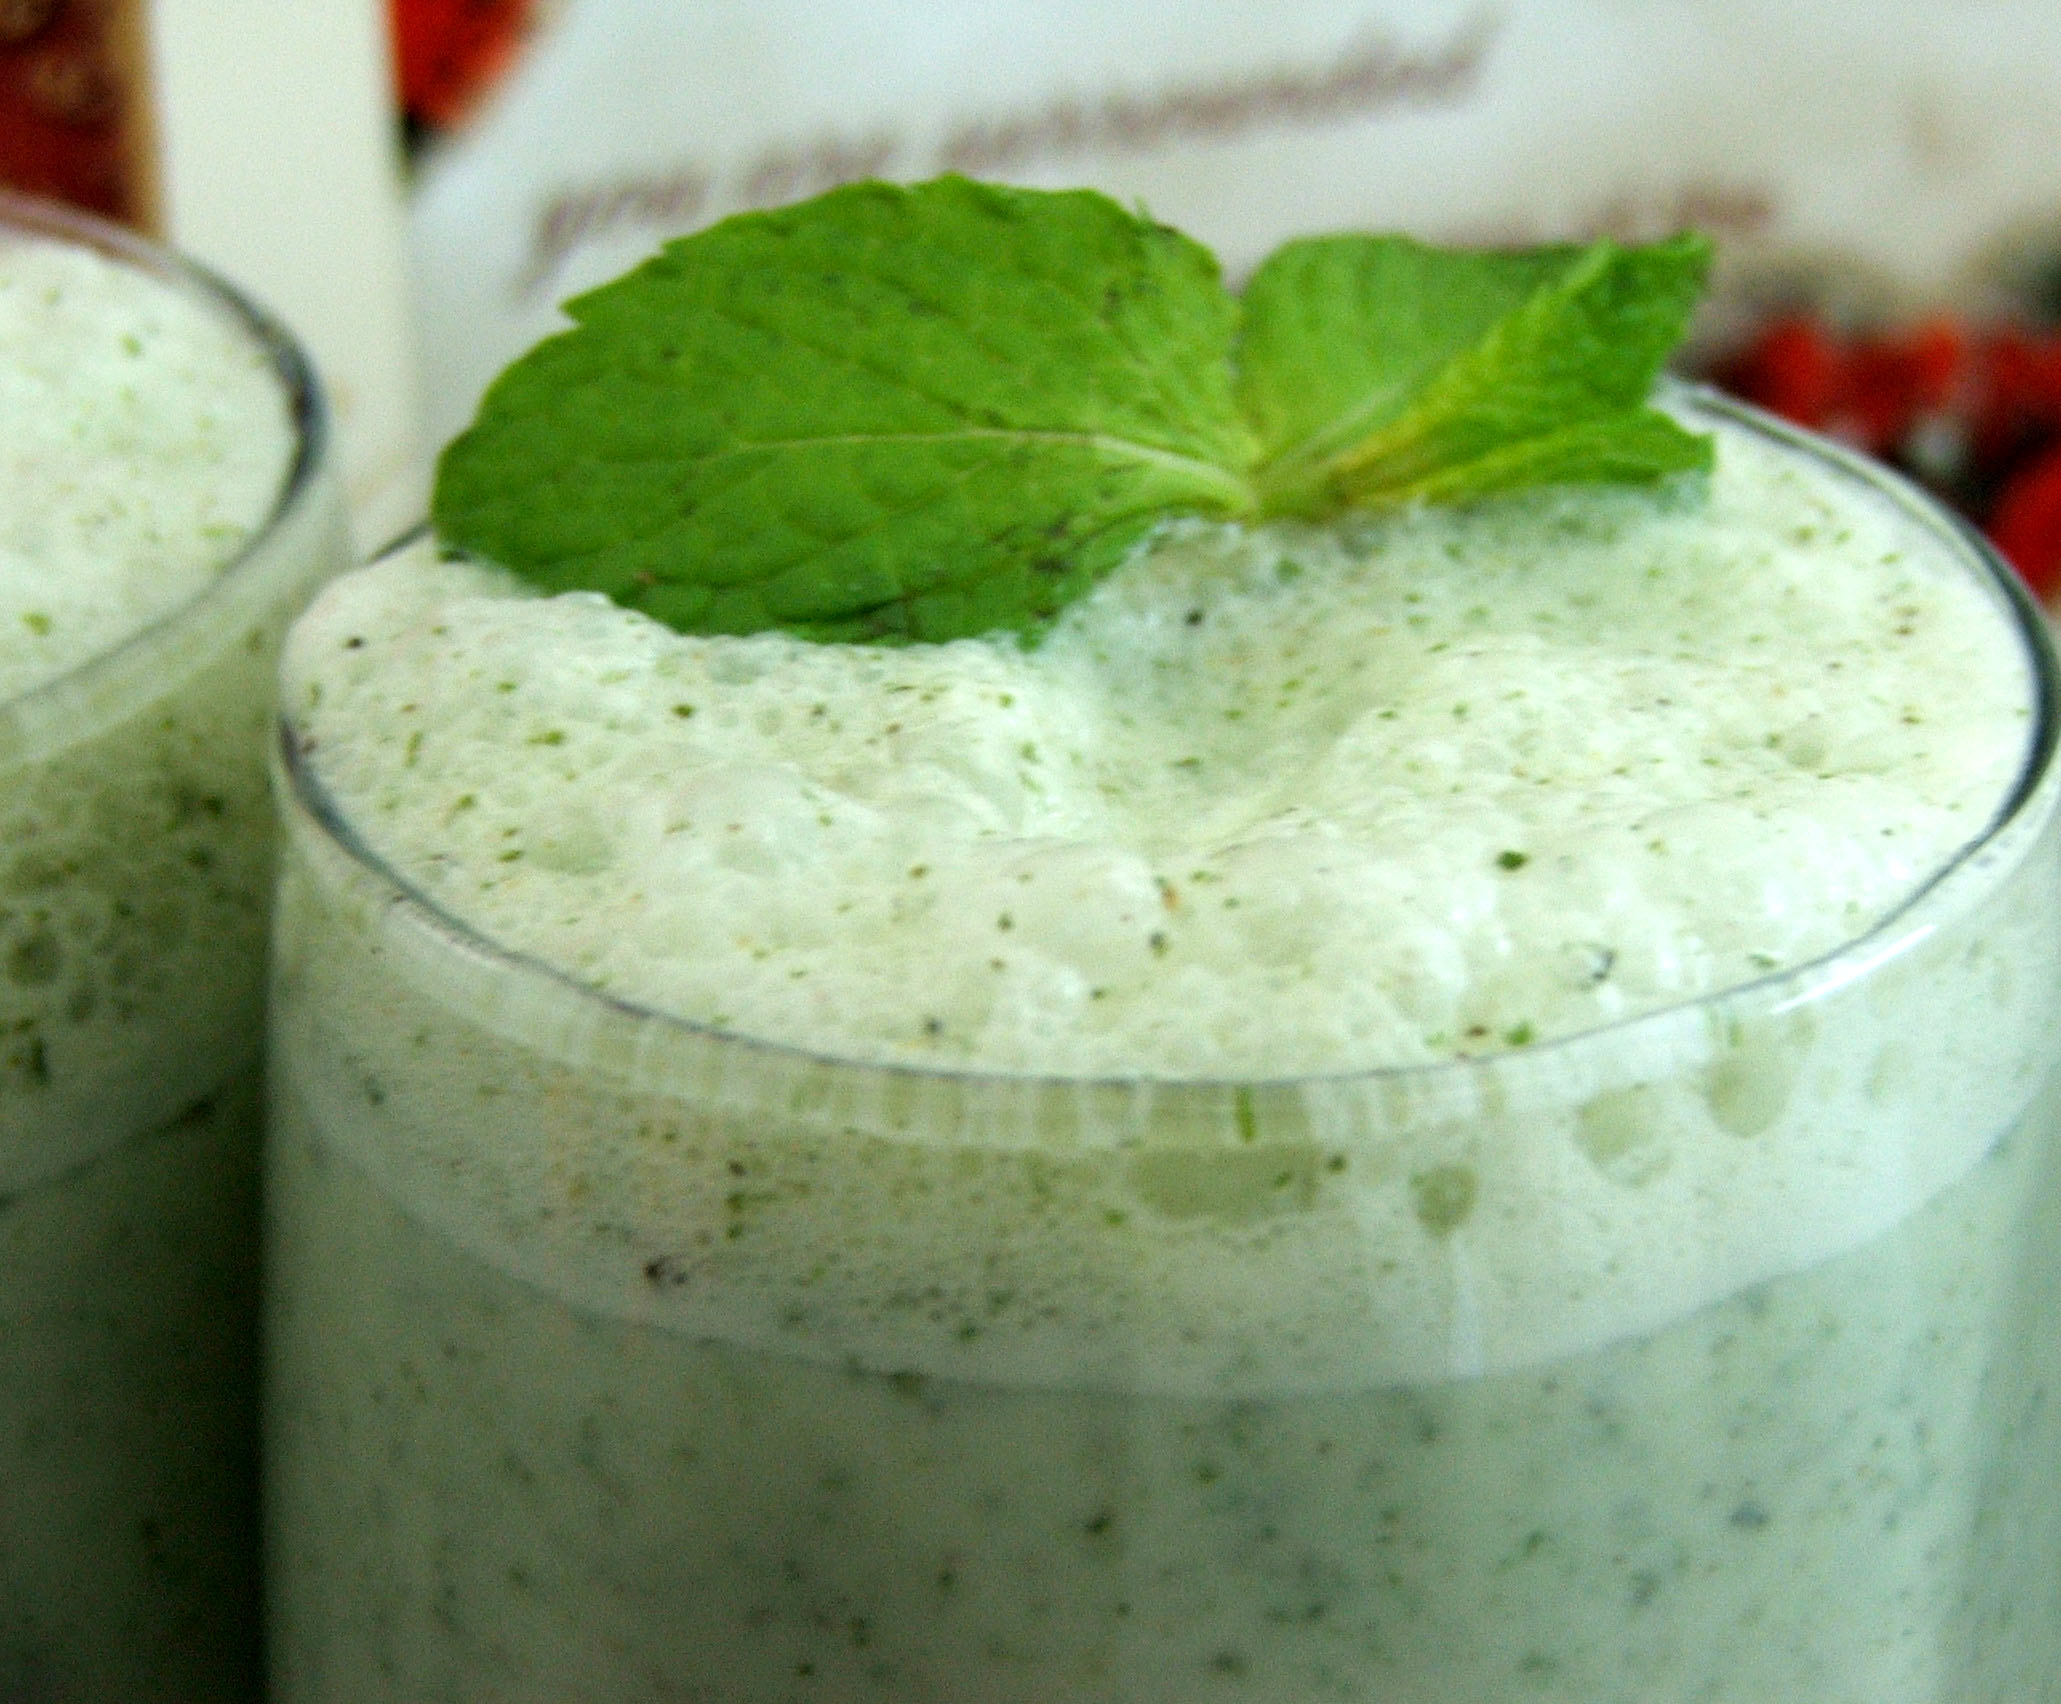 File:Mint lassi.jpg - Wikimedia Commons